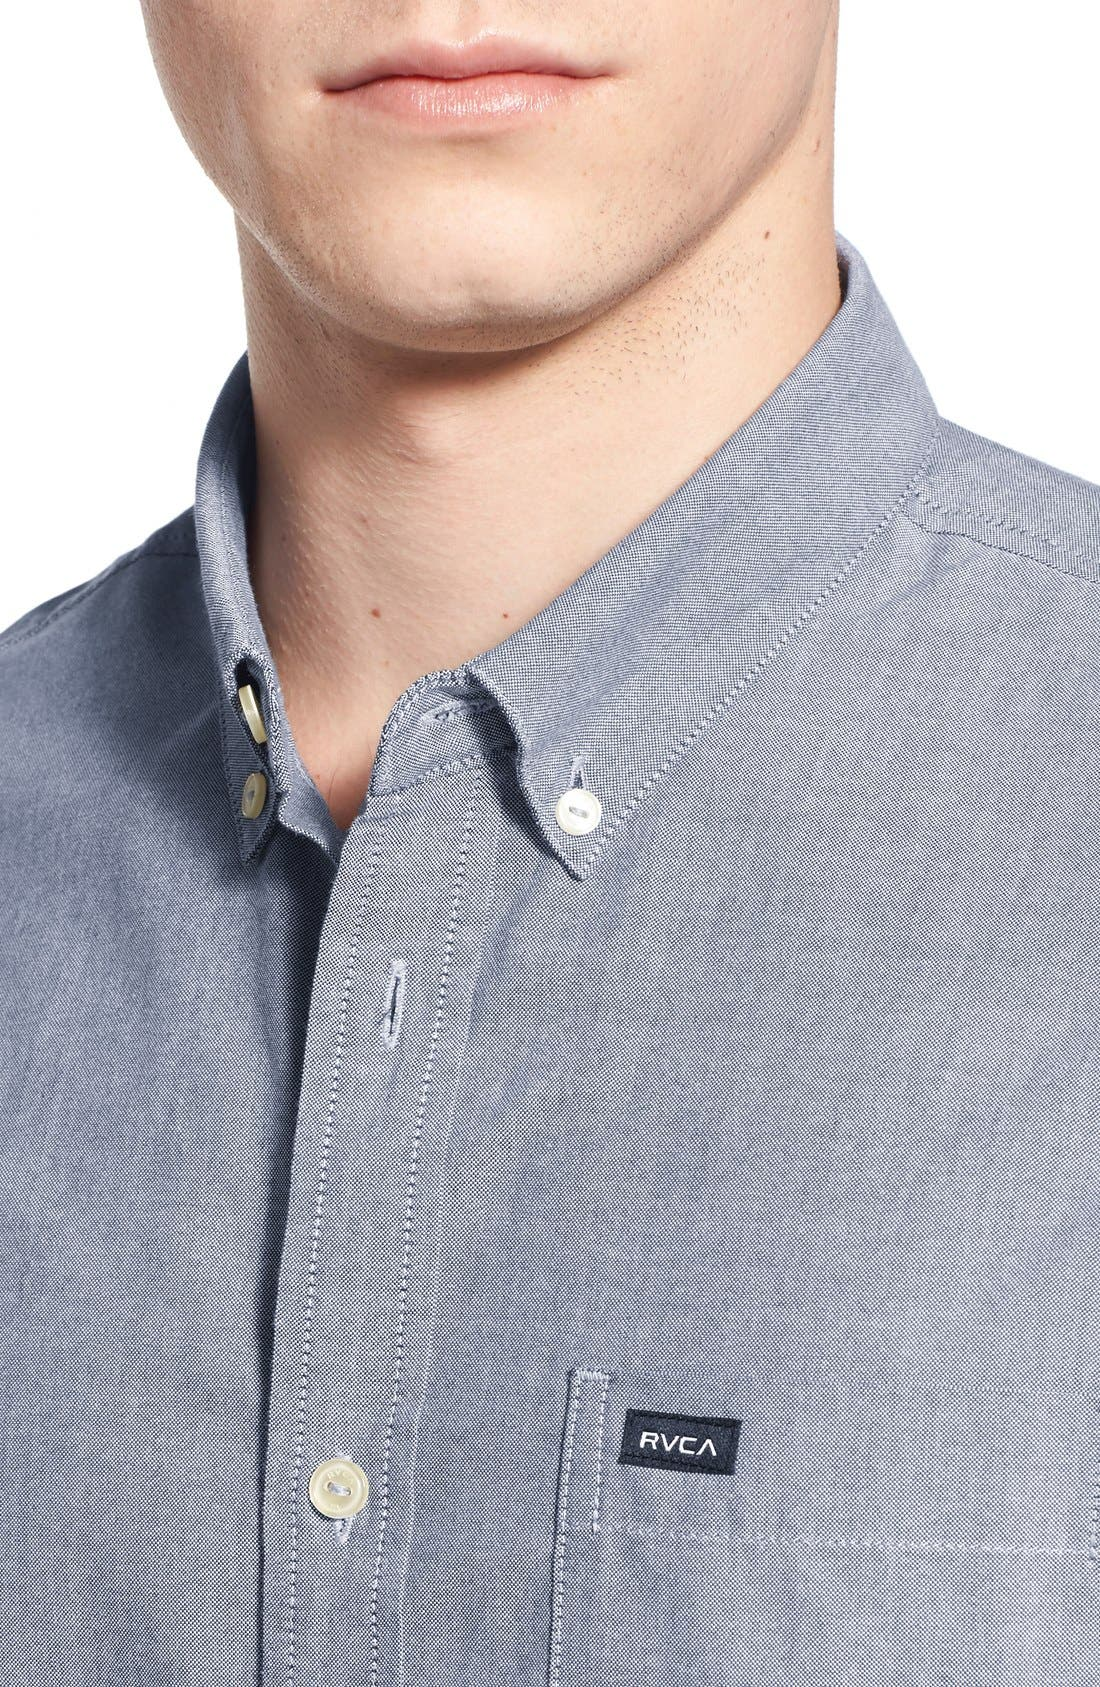 'That'll Do' Slim Fit Short Sleeve Oxford Shirt,                             Alternate thumbnail 2, color,                             DISTANT BLUE